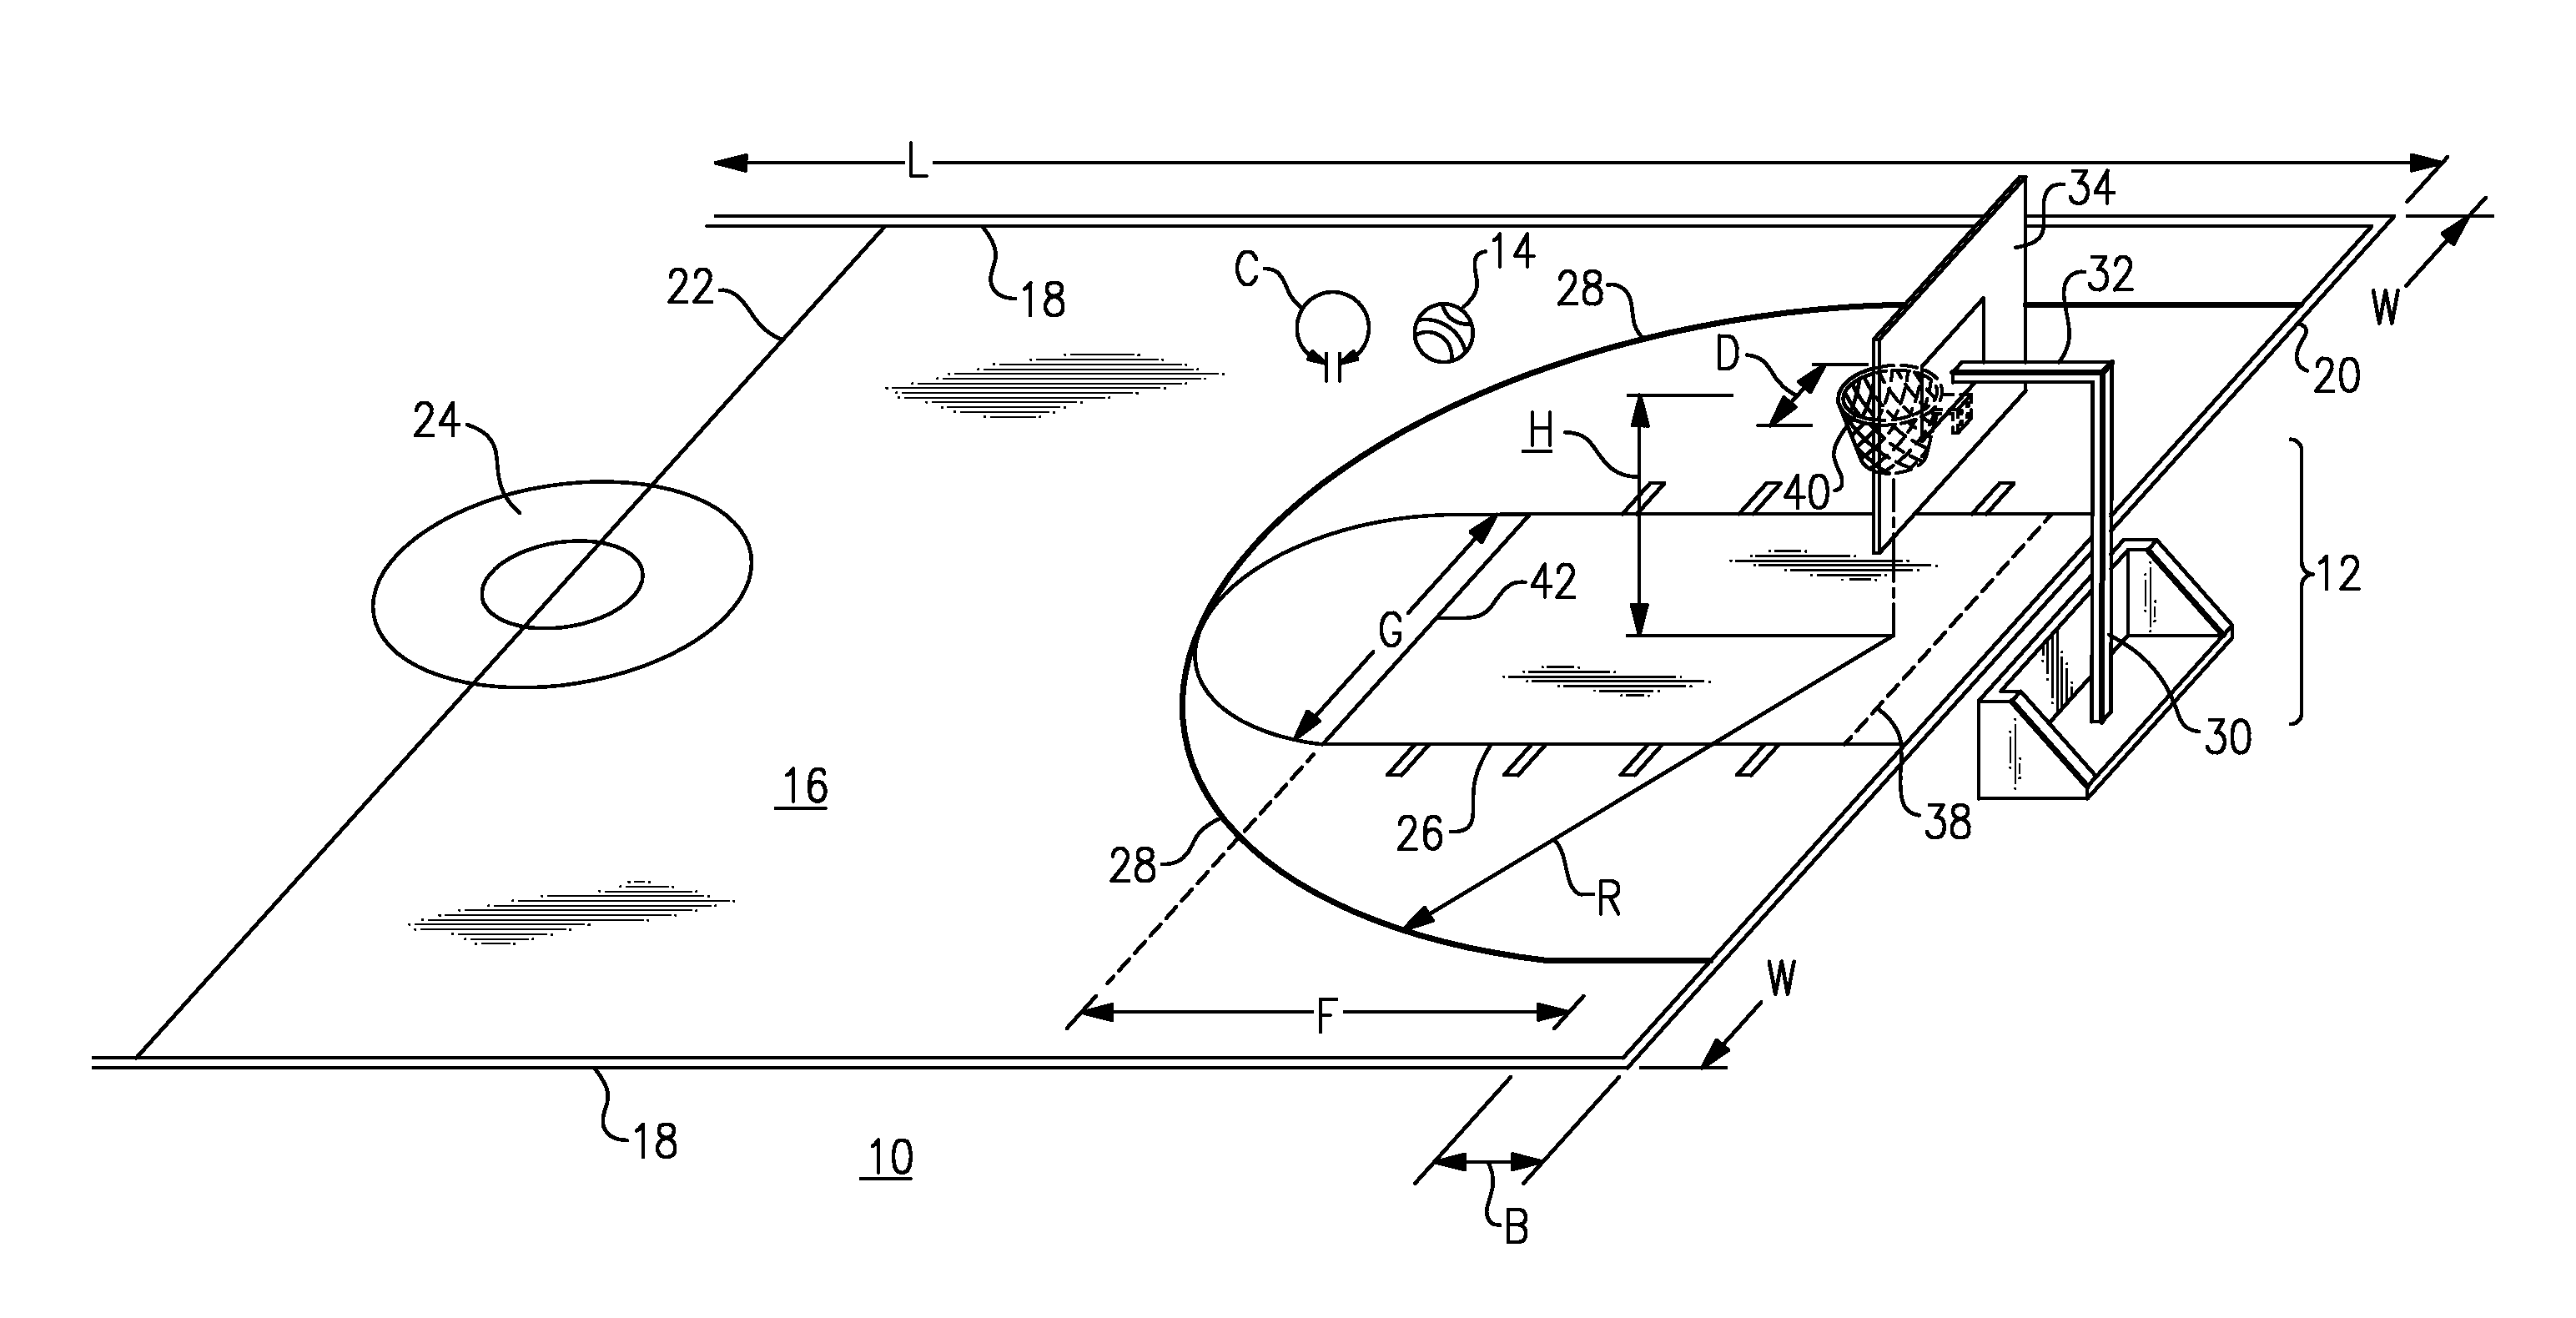 youth basketball court dimensions diagram visio wiring tutorial measurements all